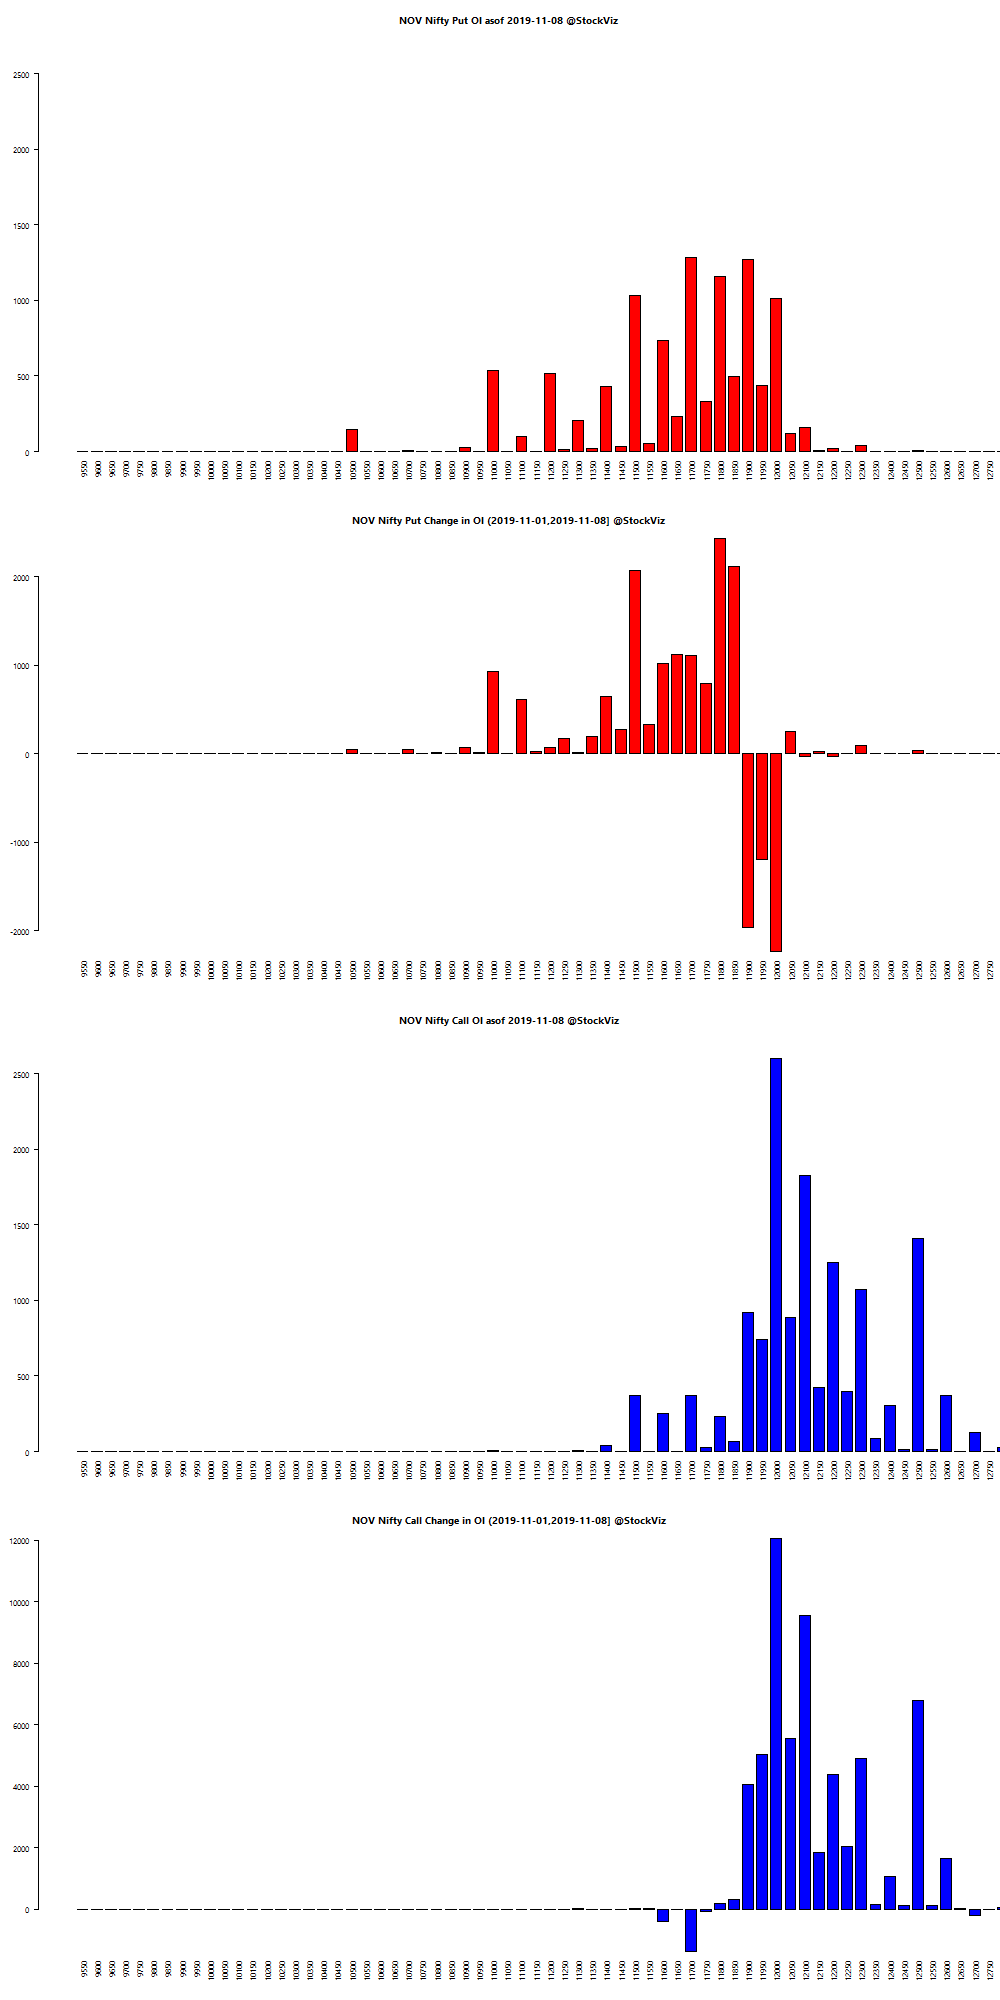 NOV NIFTY OI chart